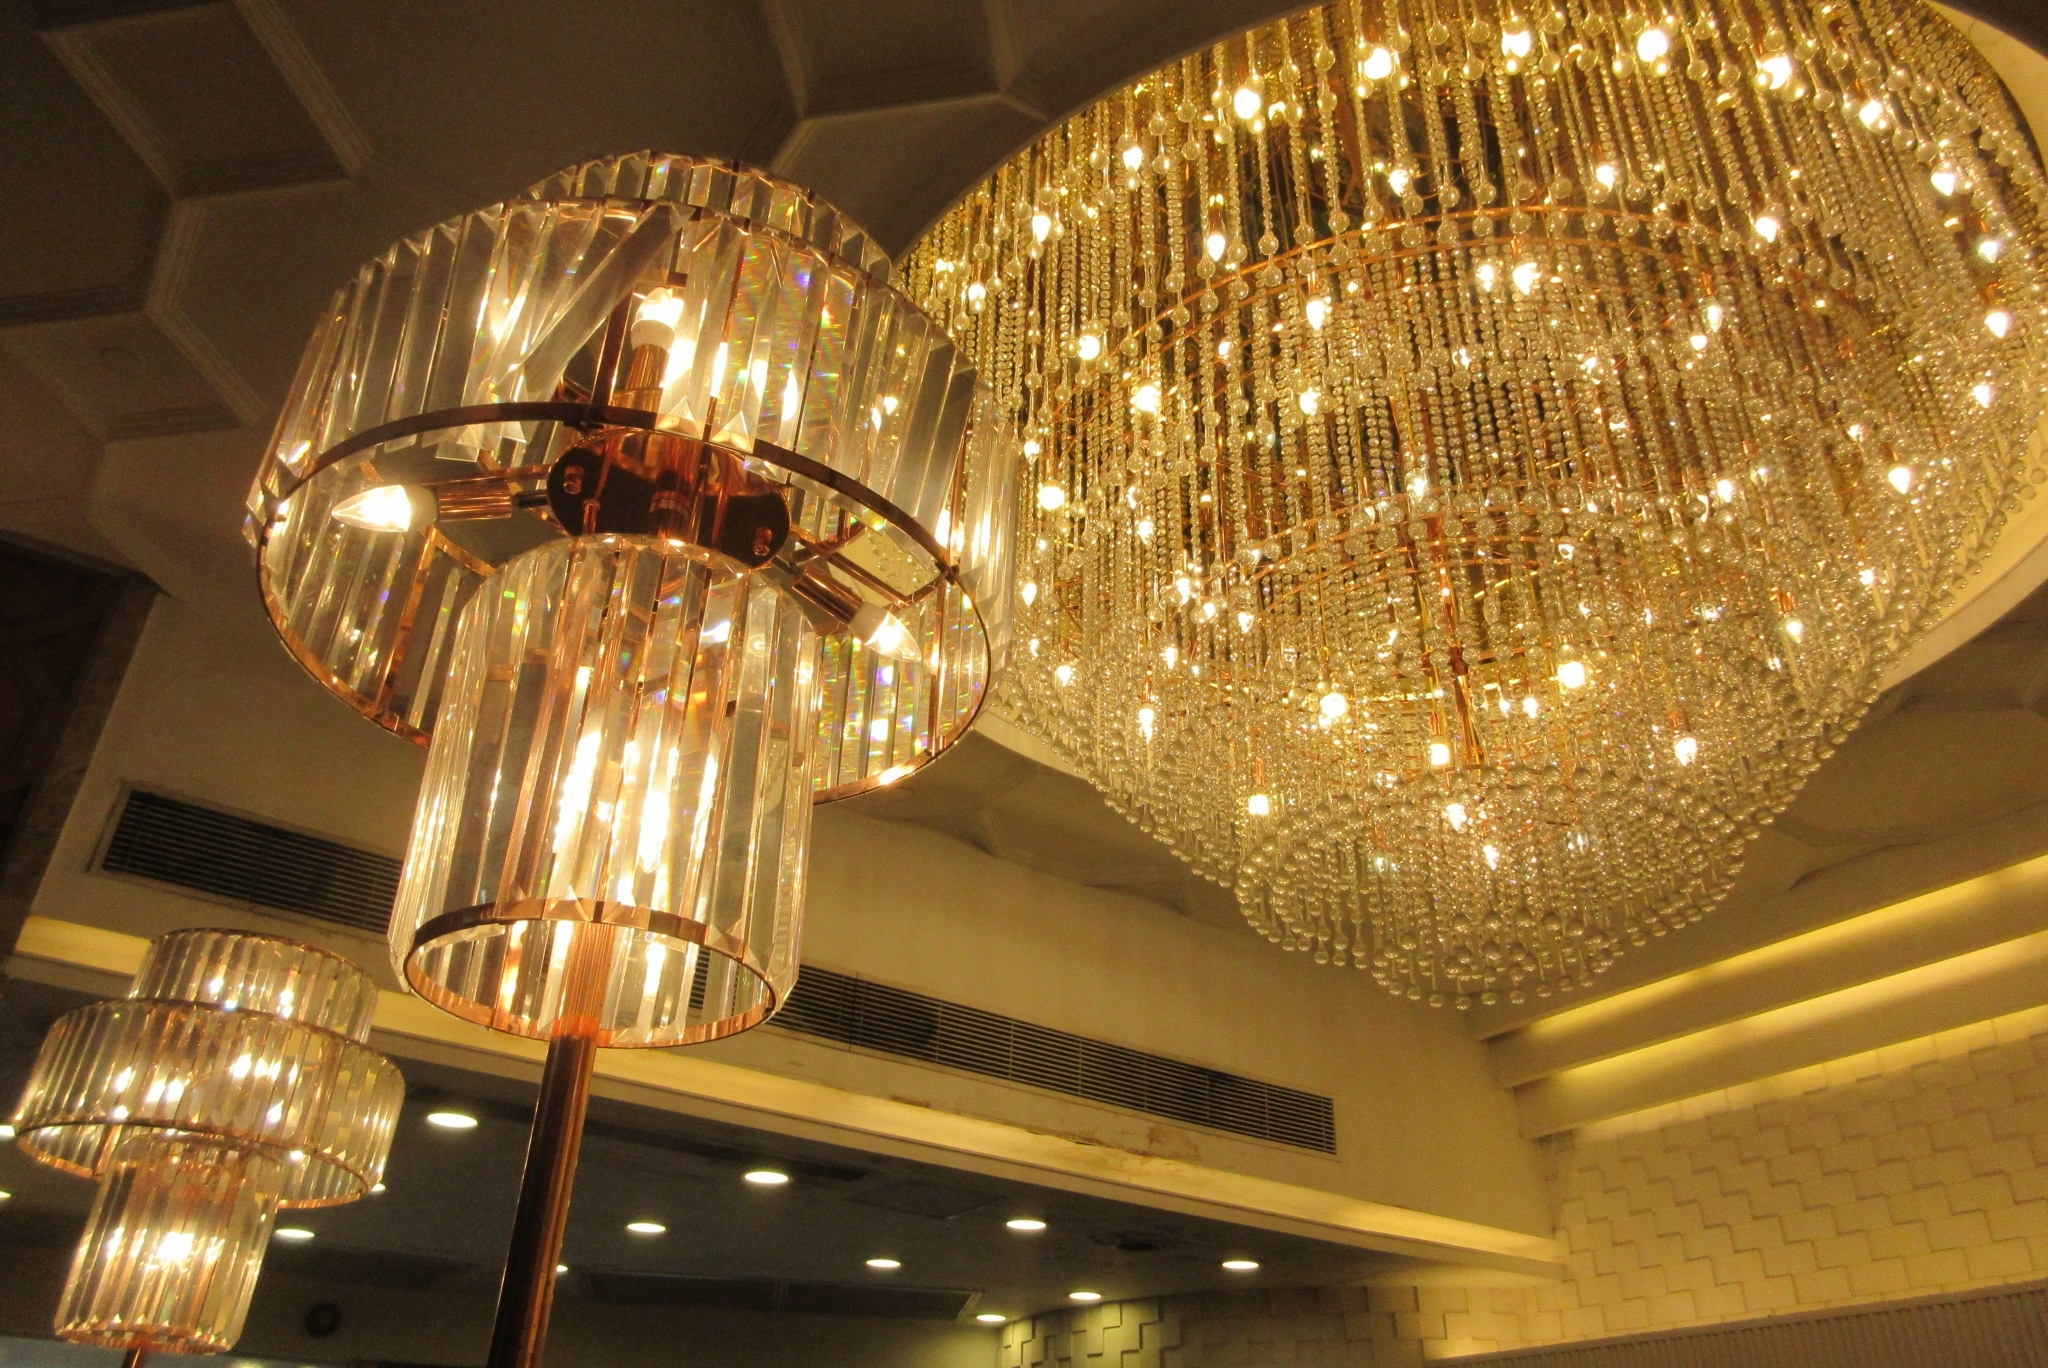 Restaurant Chandeliers Throughout 2017 File:hk Sai Ying Pun 明星海鮮酒家 Star Seafood Restaurant (View 13 of 15)